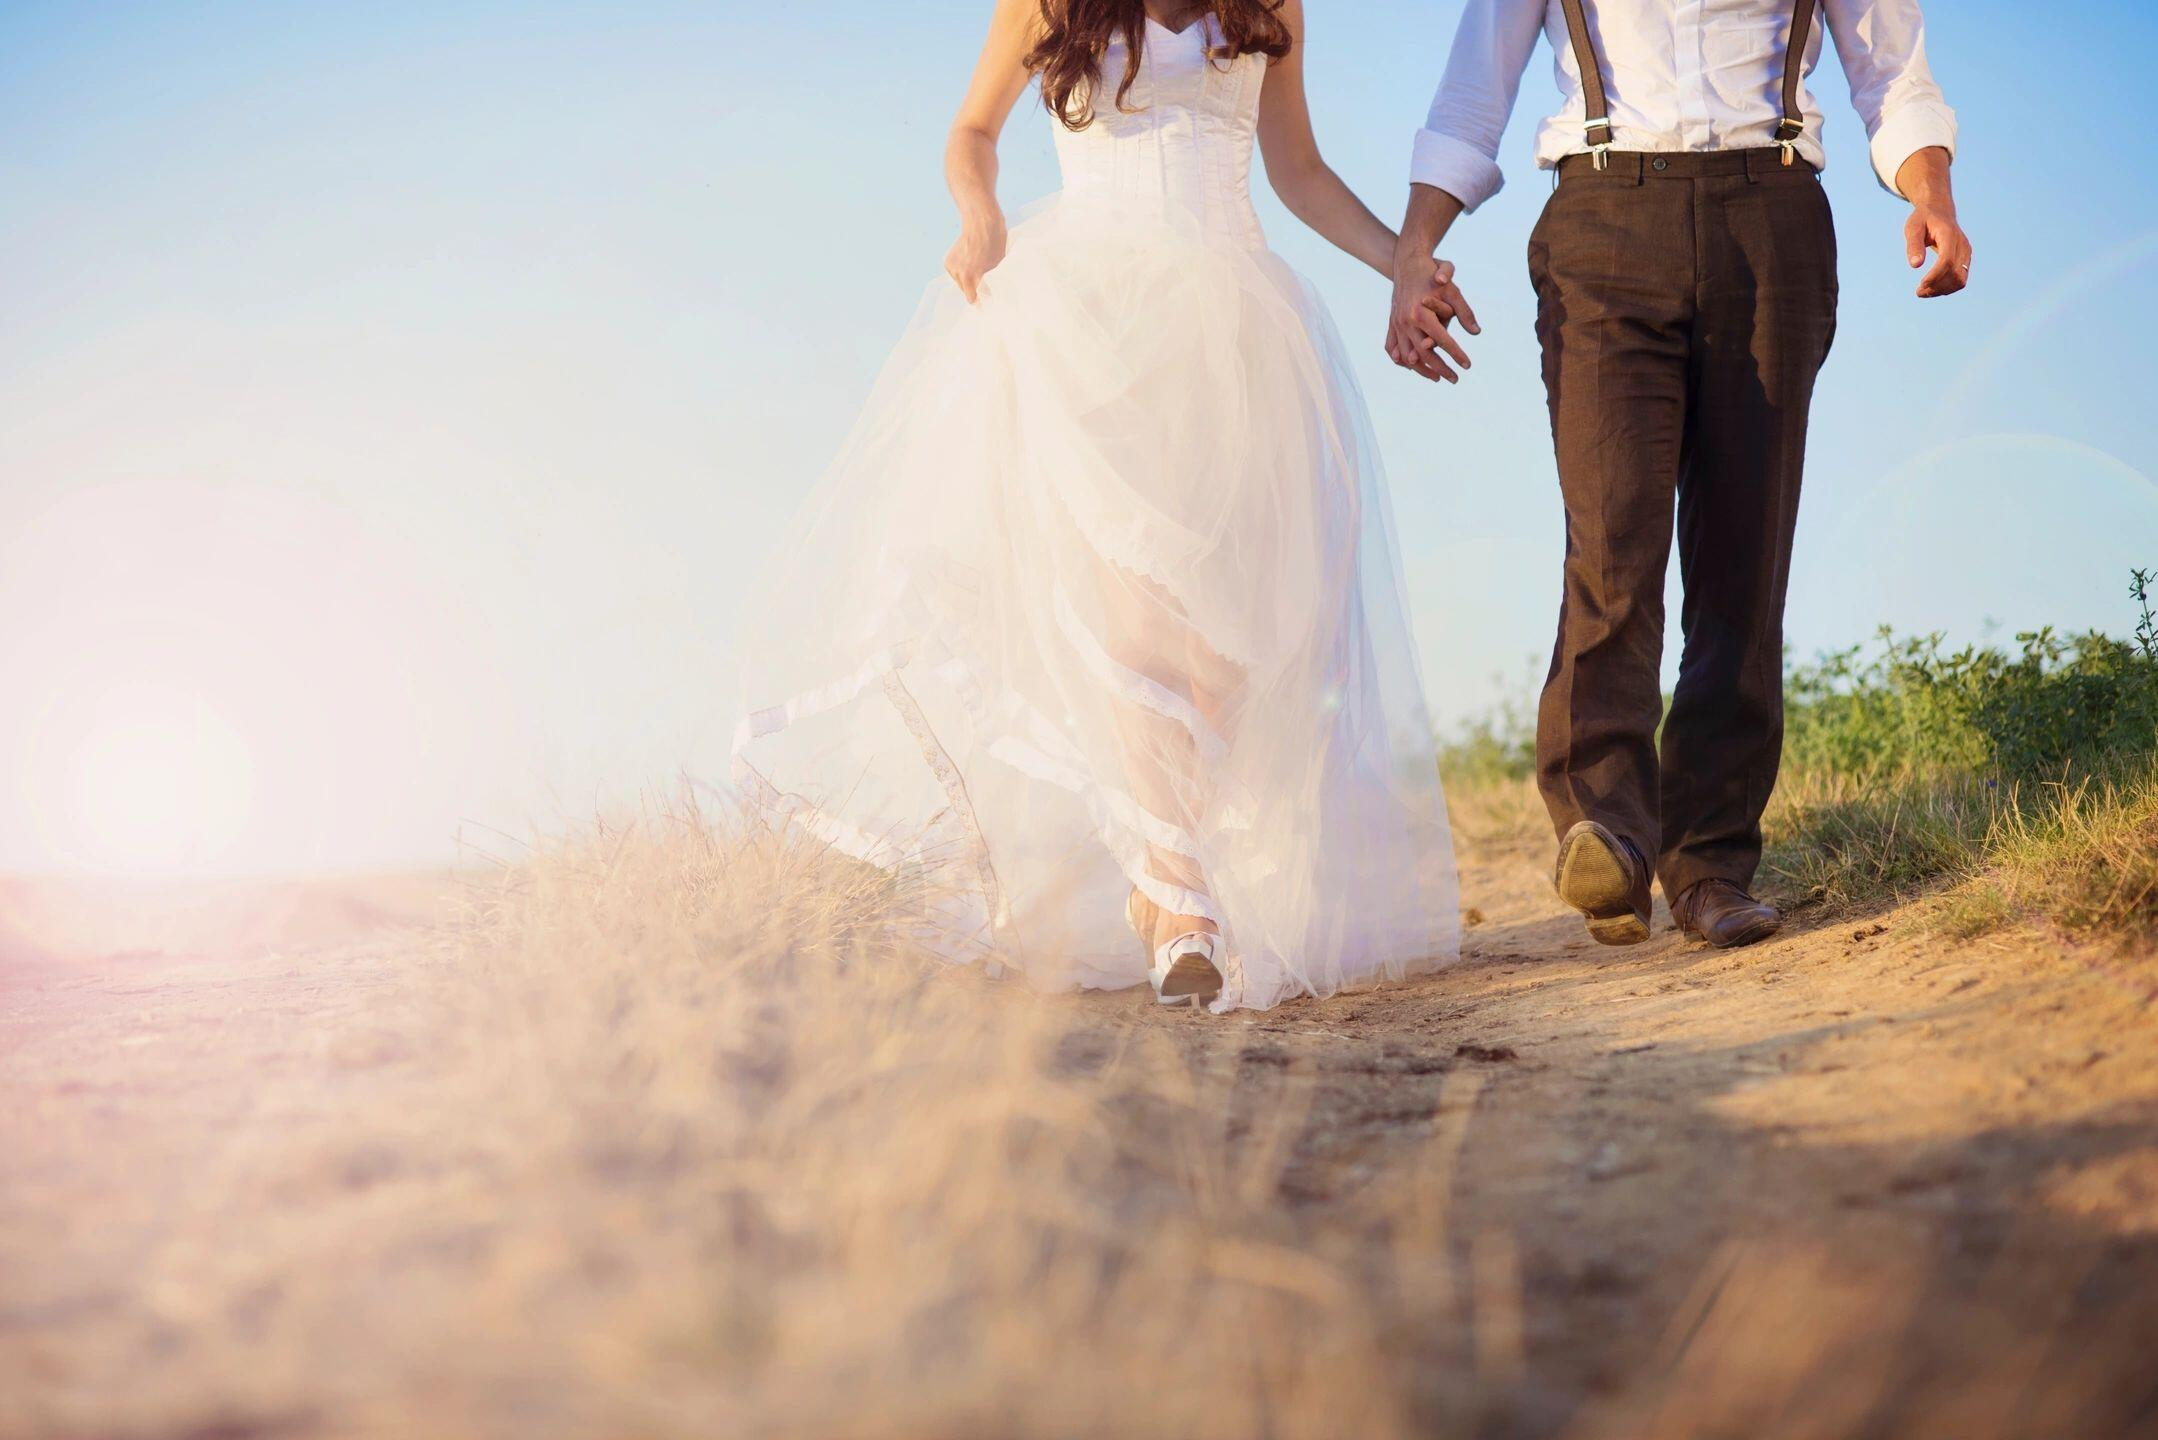 What are Some Clutter Free Wedding Gifts? Ideas for the Happy Couple